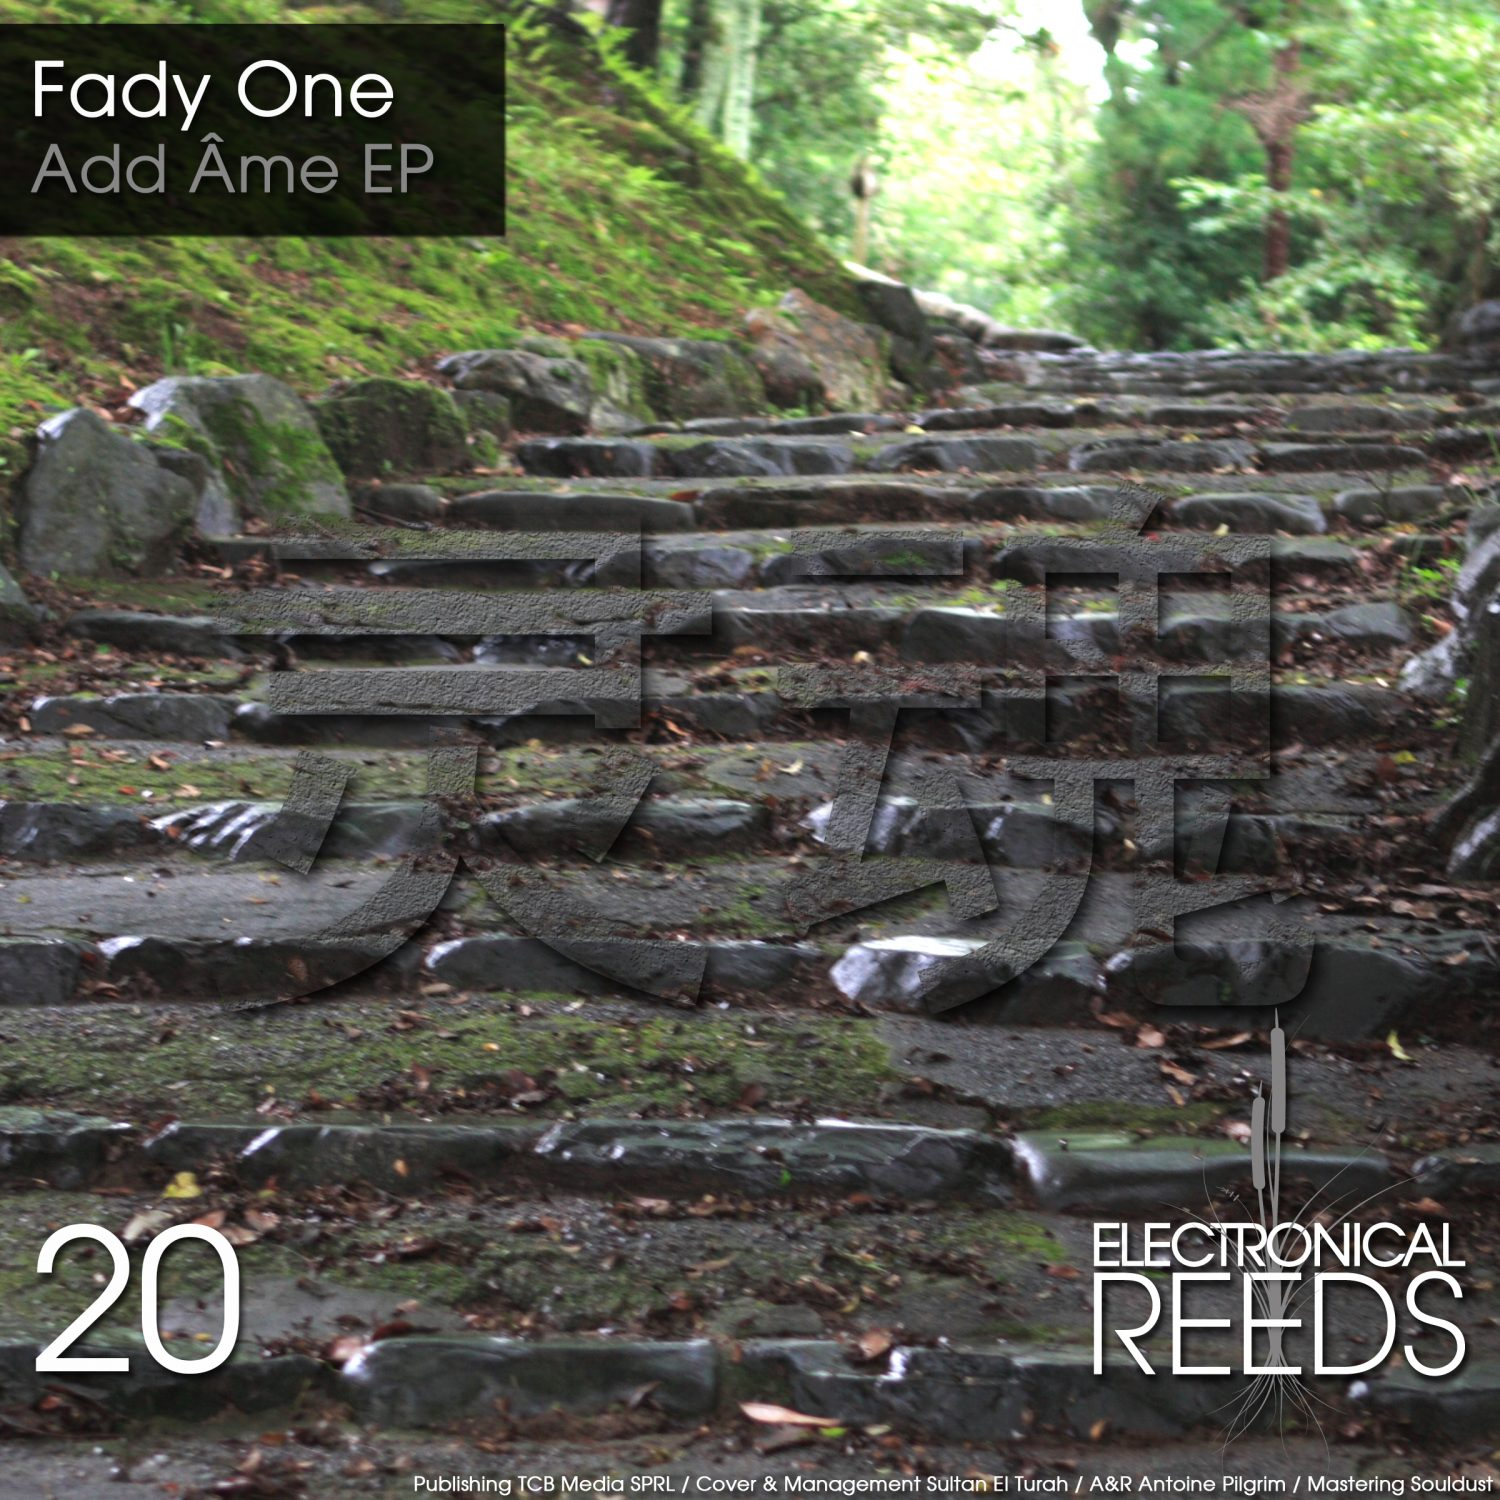 ER020 - Fady One - Add Ame EP - Electronical Reeds